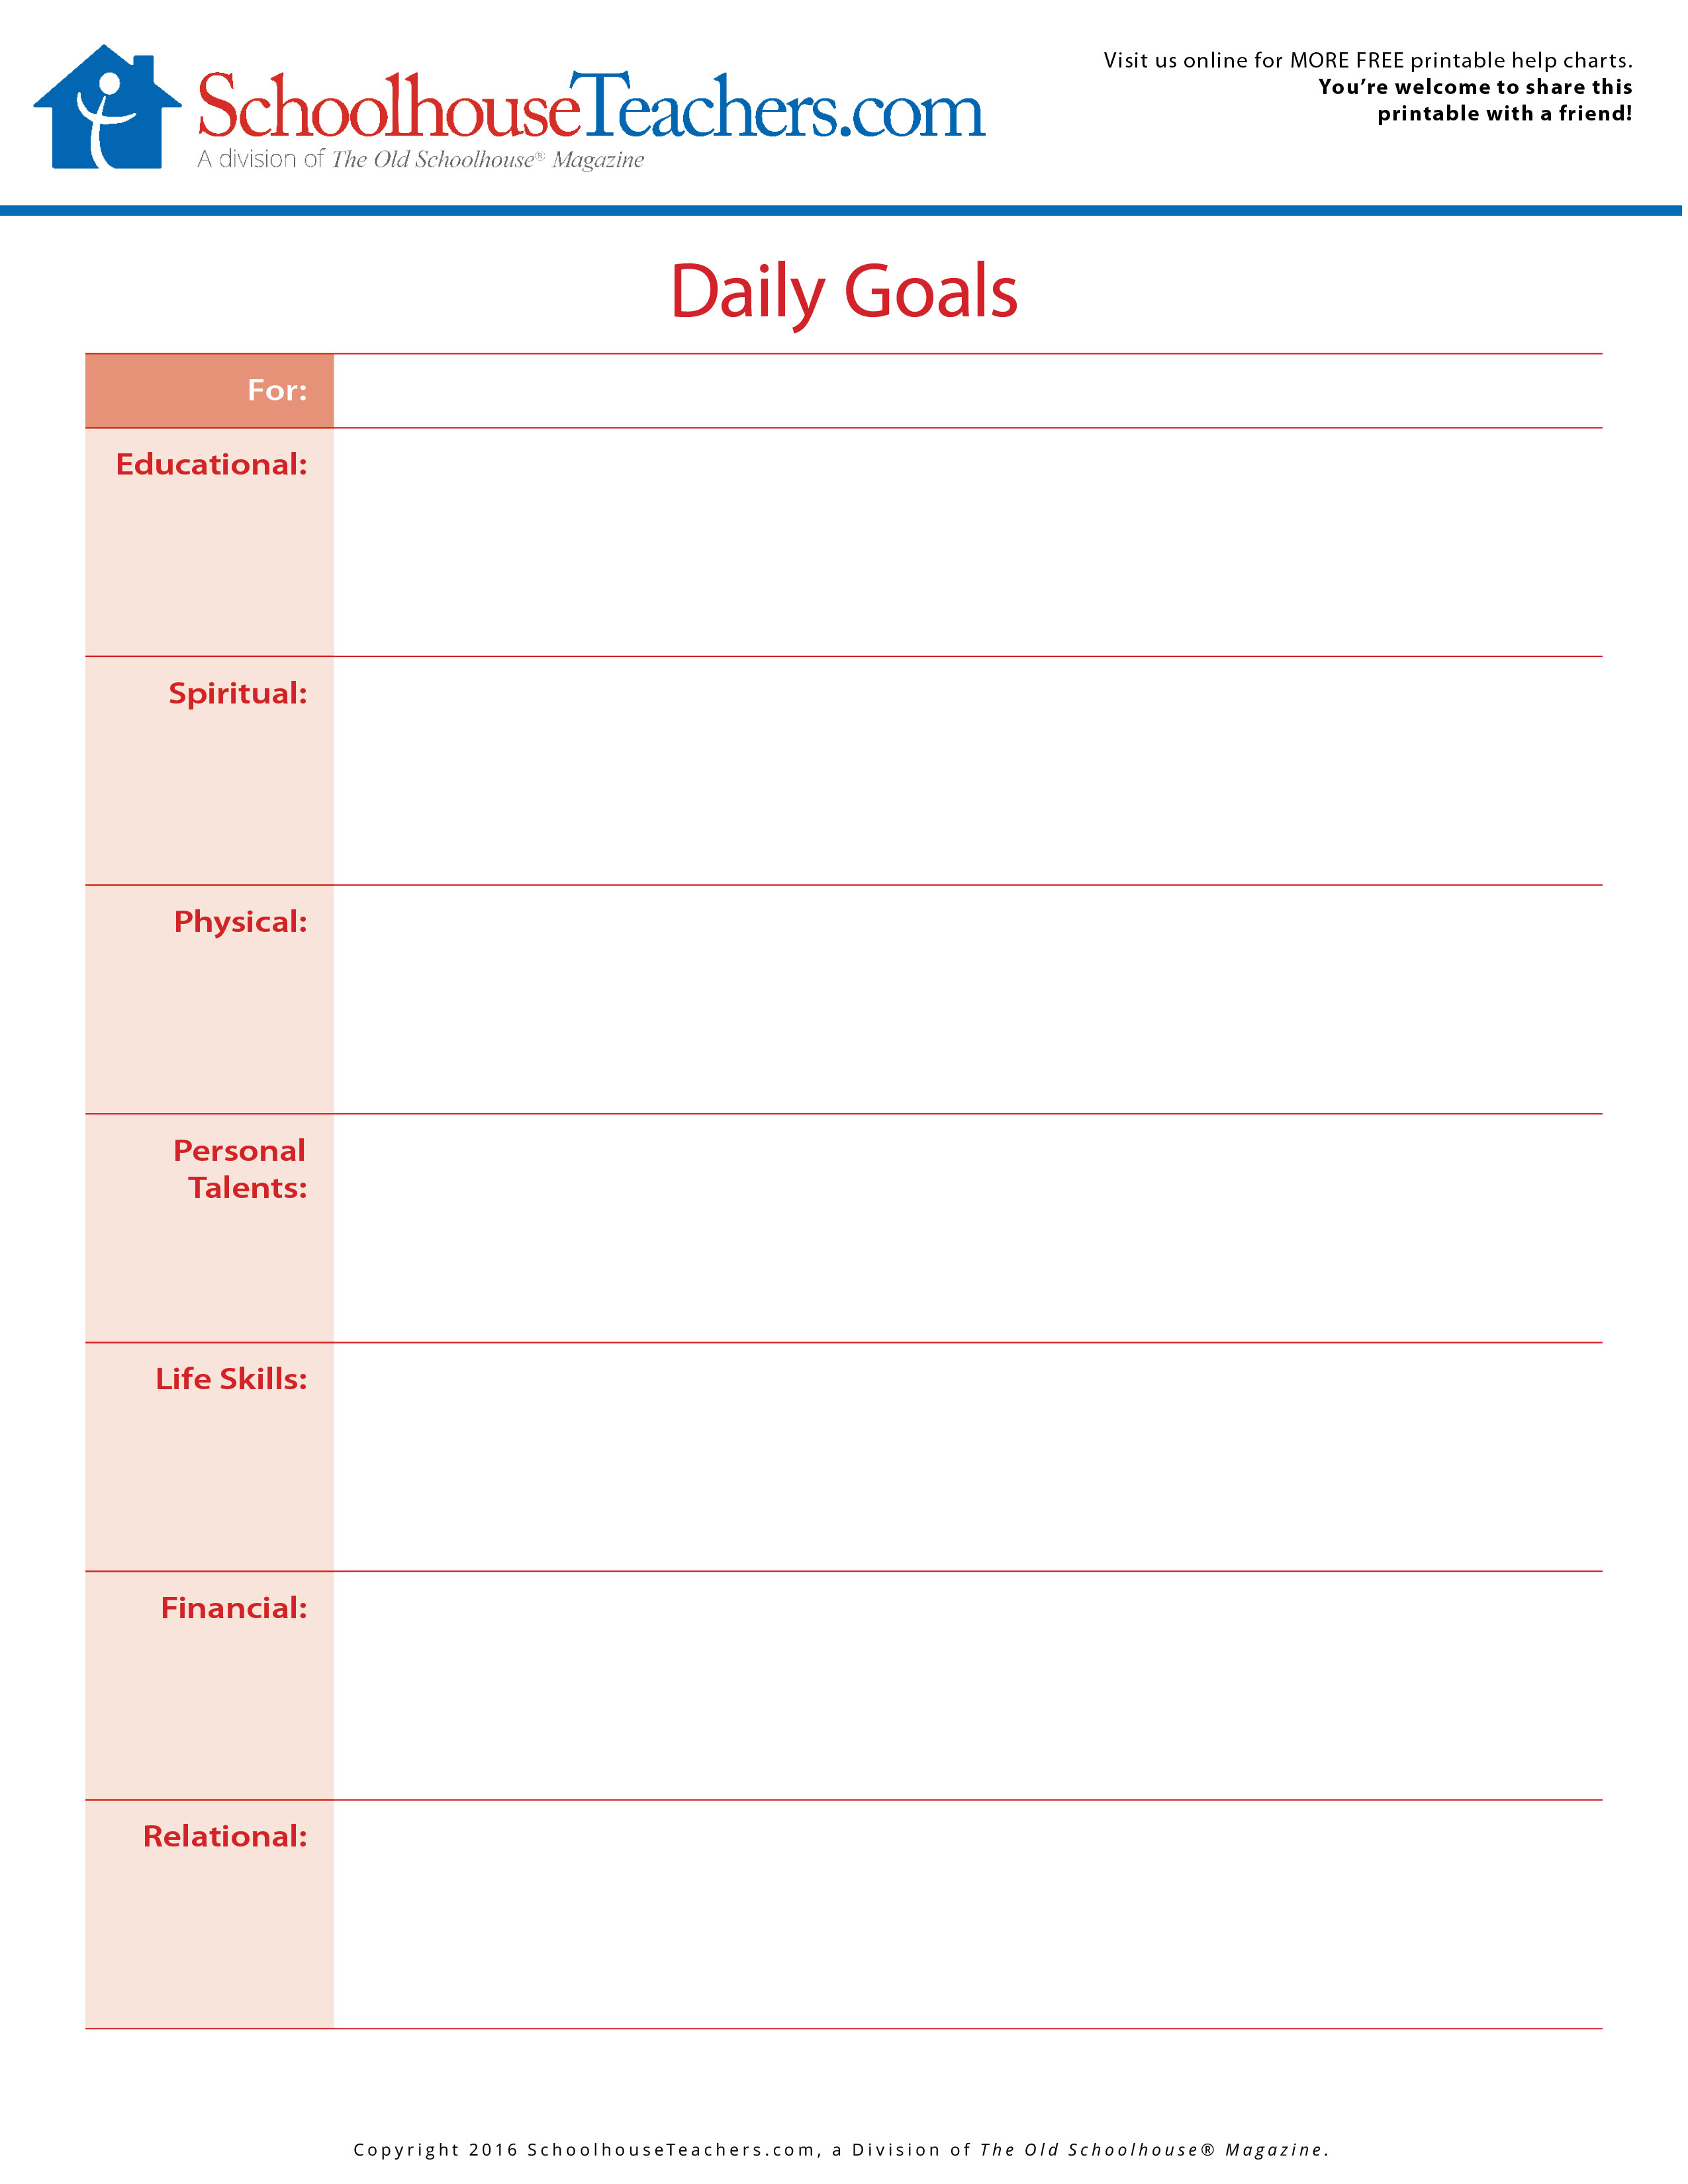 homeschool printable schedules planners academic goals for the year